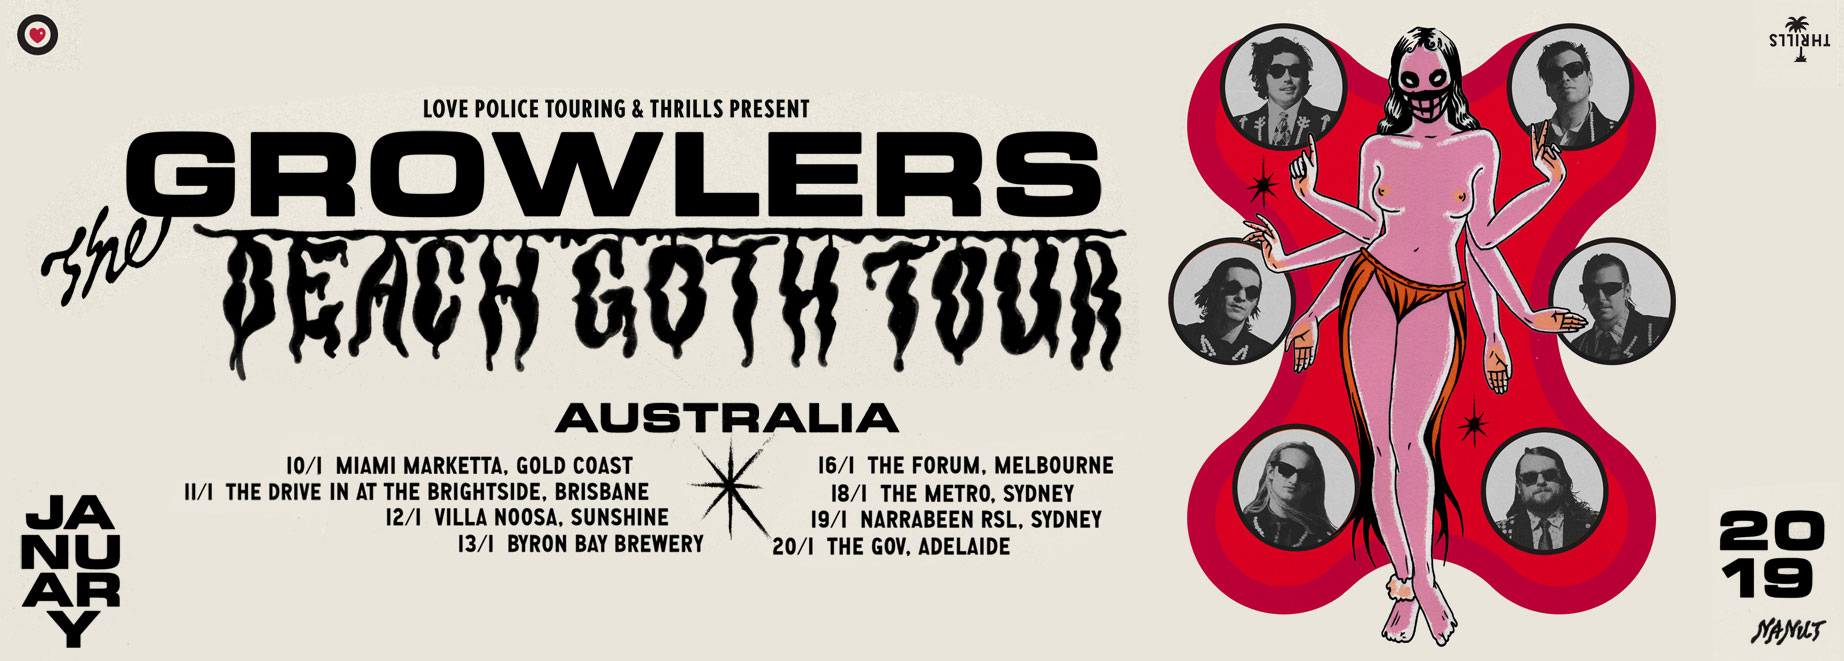 The Growlers Beach Goth Tour - AUSTRALIA